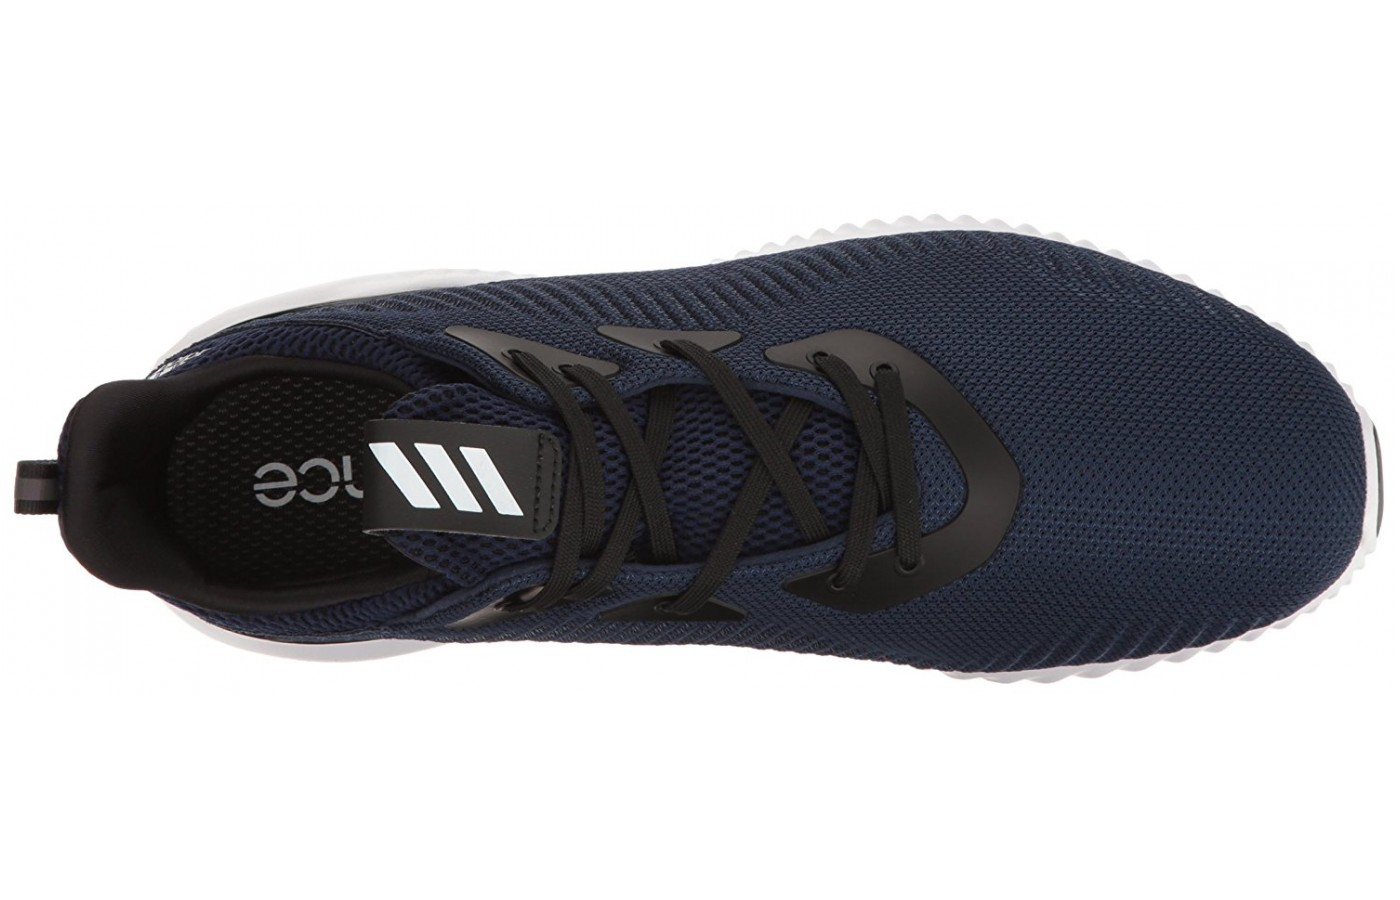 A picture of the Adidas Alpha Bounce's comfortable insole.